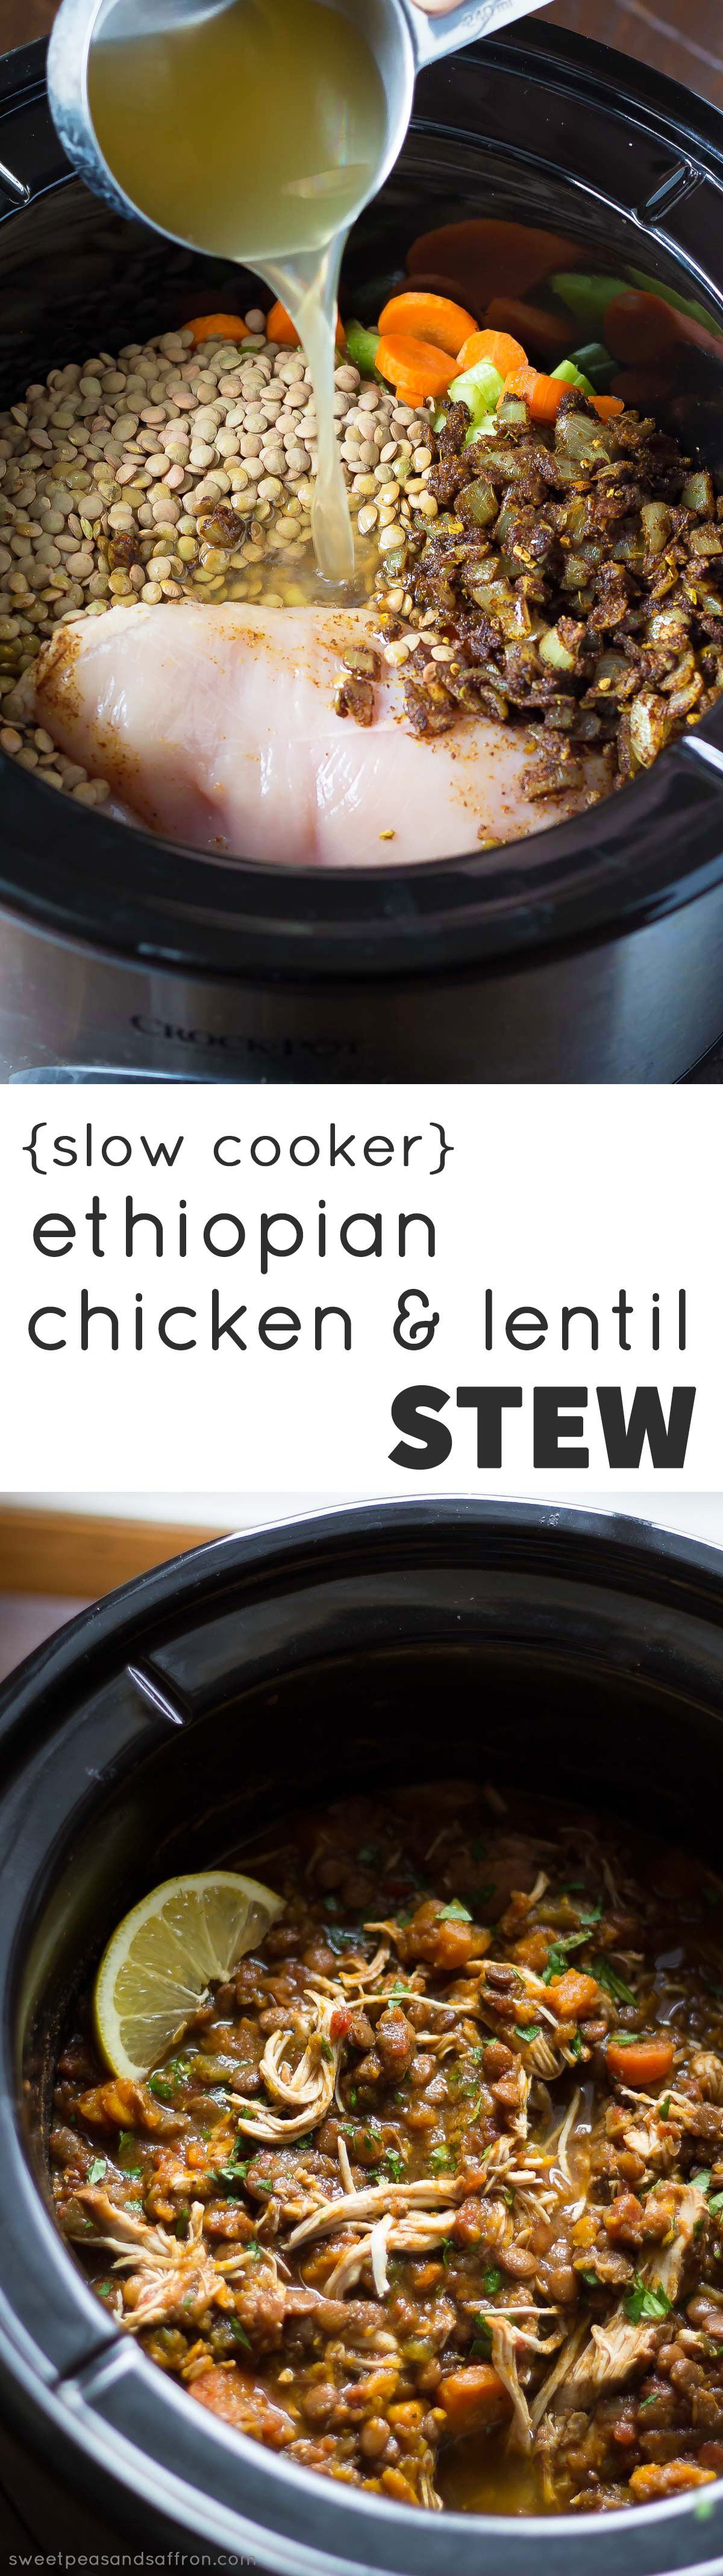 Slow Cooker Ethiopian Chicken  Lentil Stew  Recipe  Blogger Recipes -3329